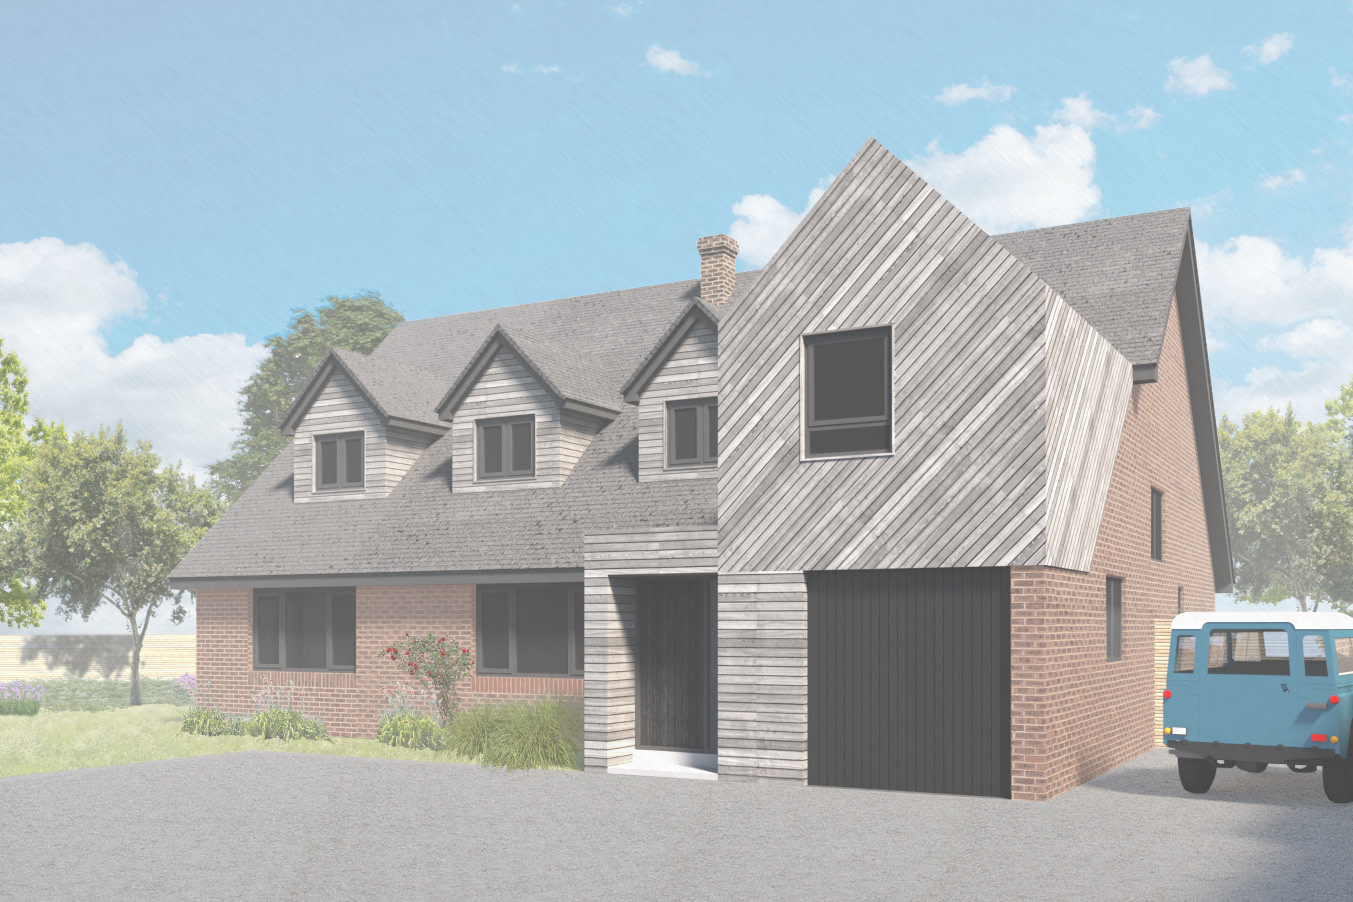 Perspective view showing the front elevation, with timber clad entrance porch and bedroom above